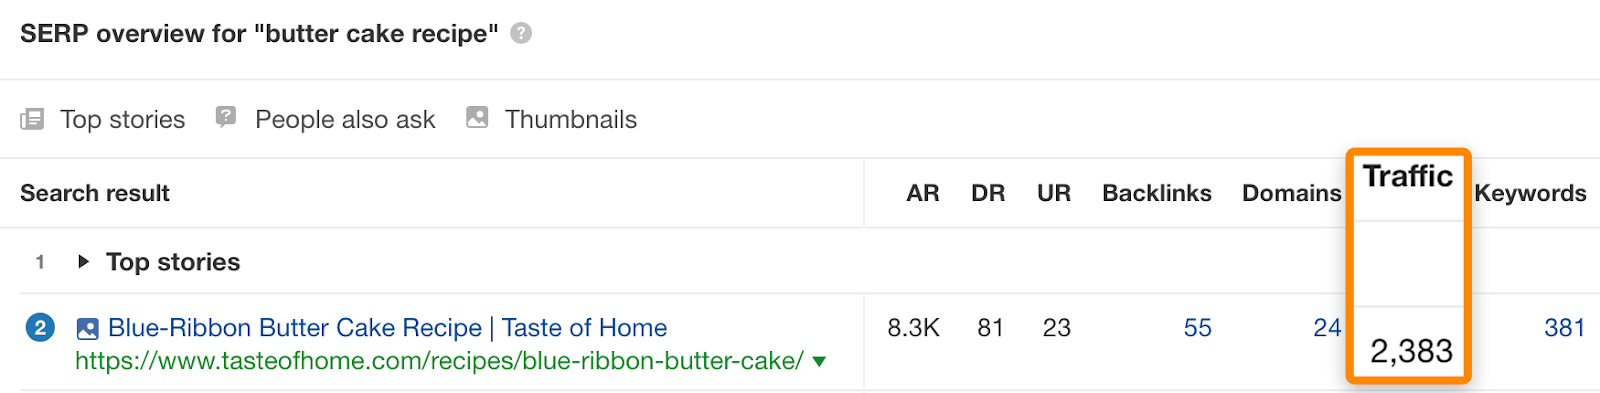 11 butter cake recipe traffic